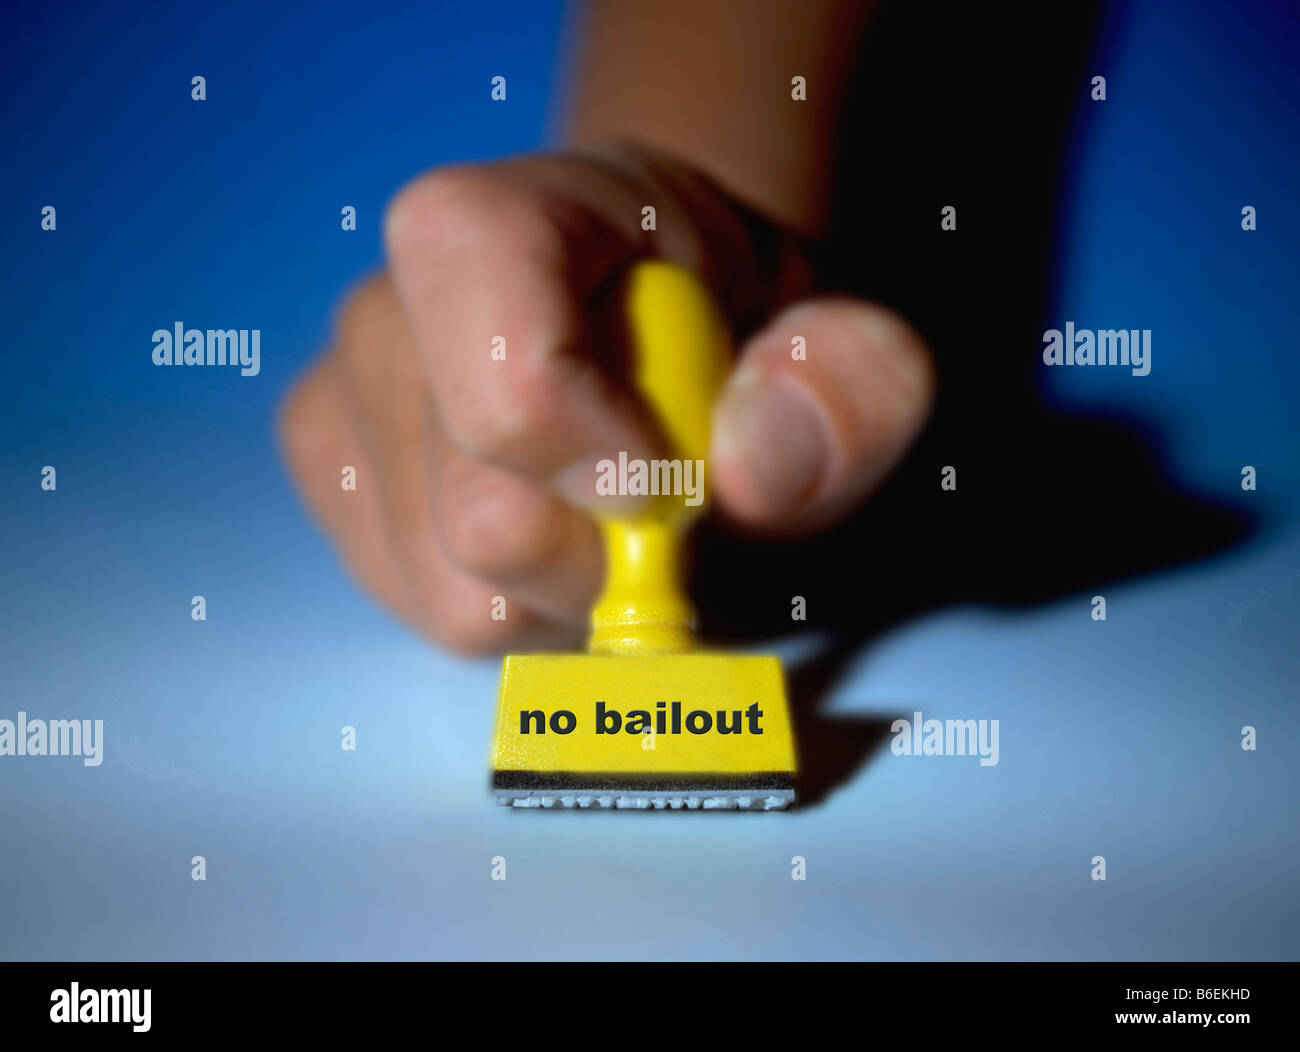 digital enhancement rubber stamp marked no bailout - Stock Image